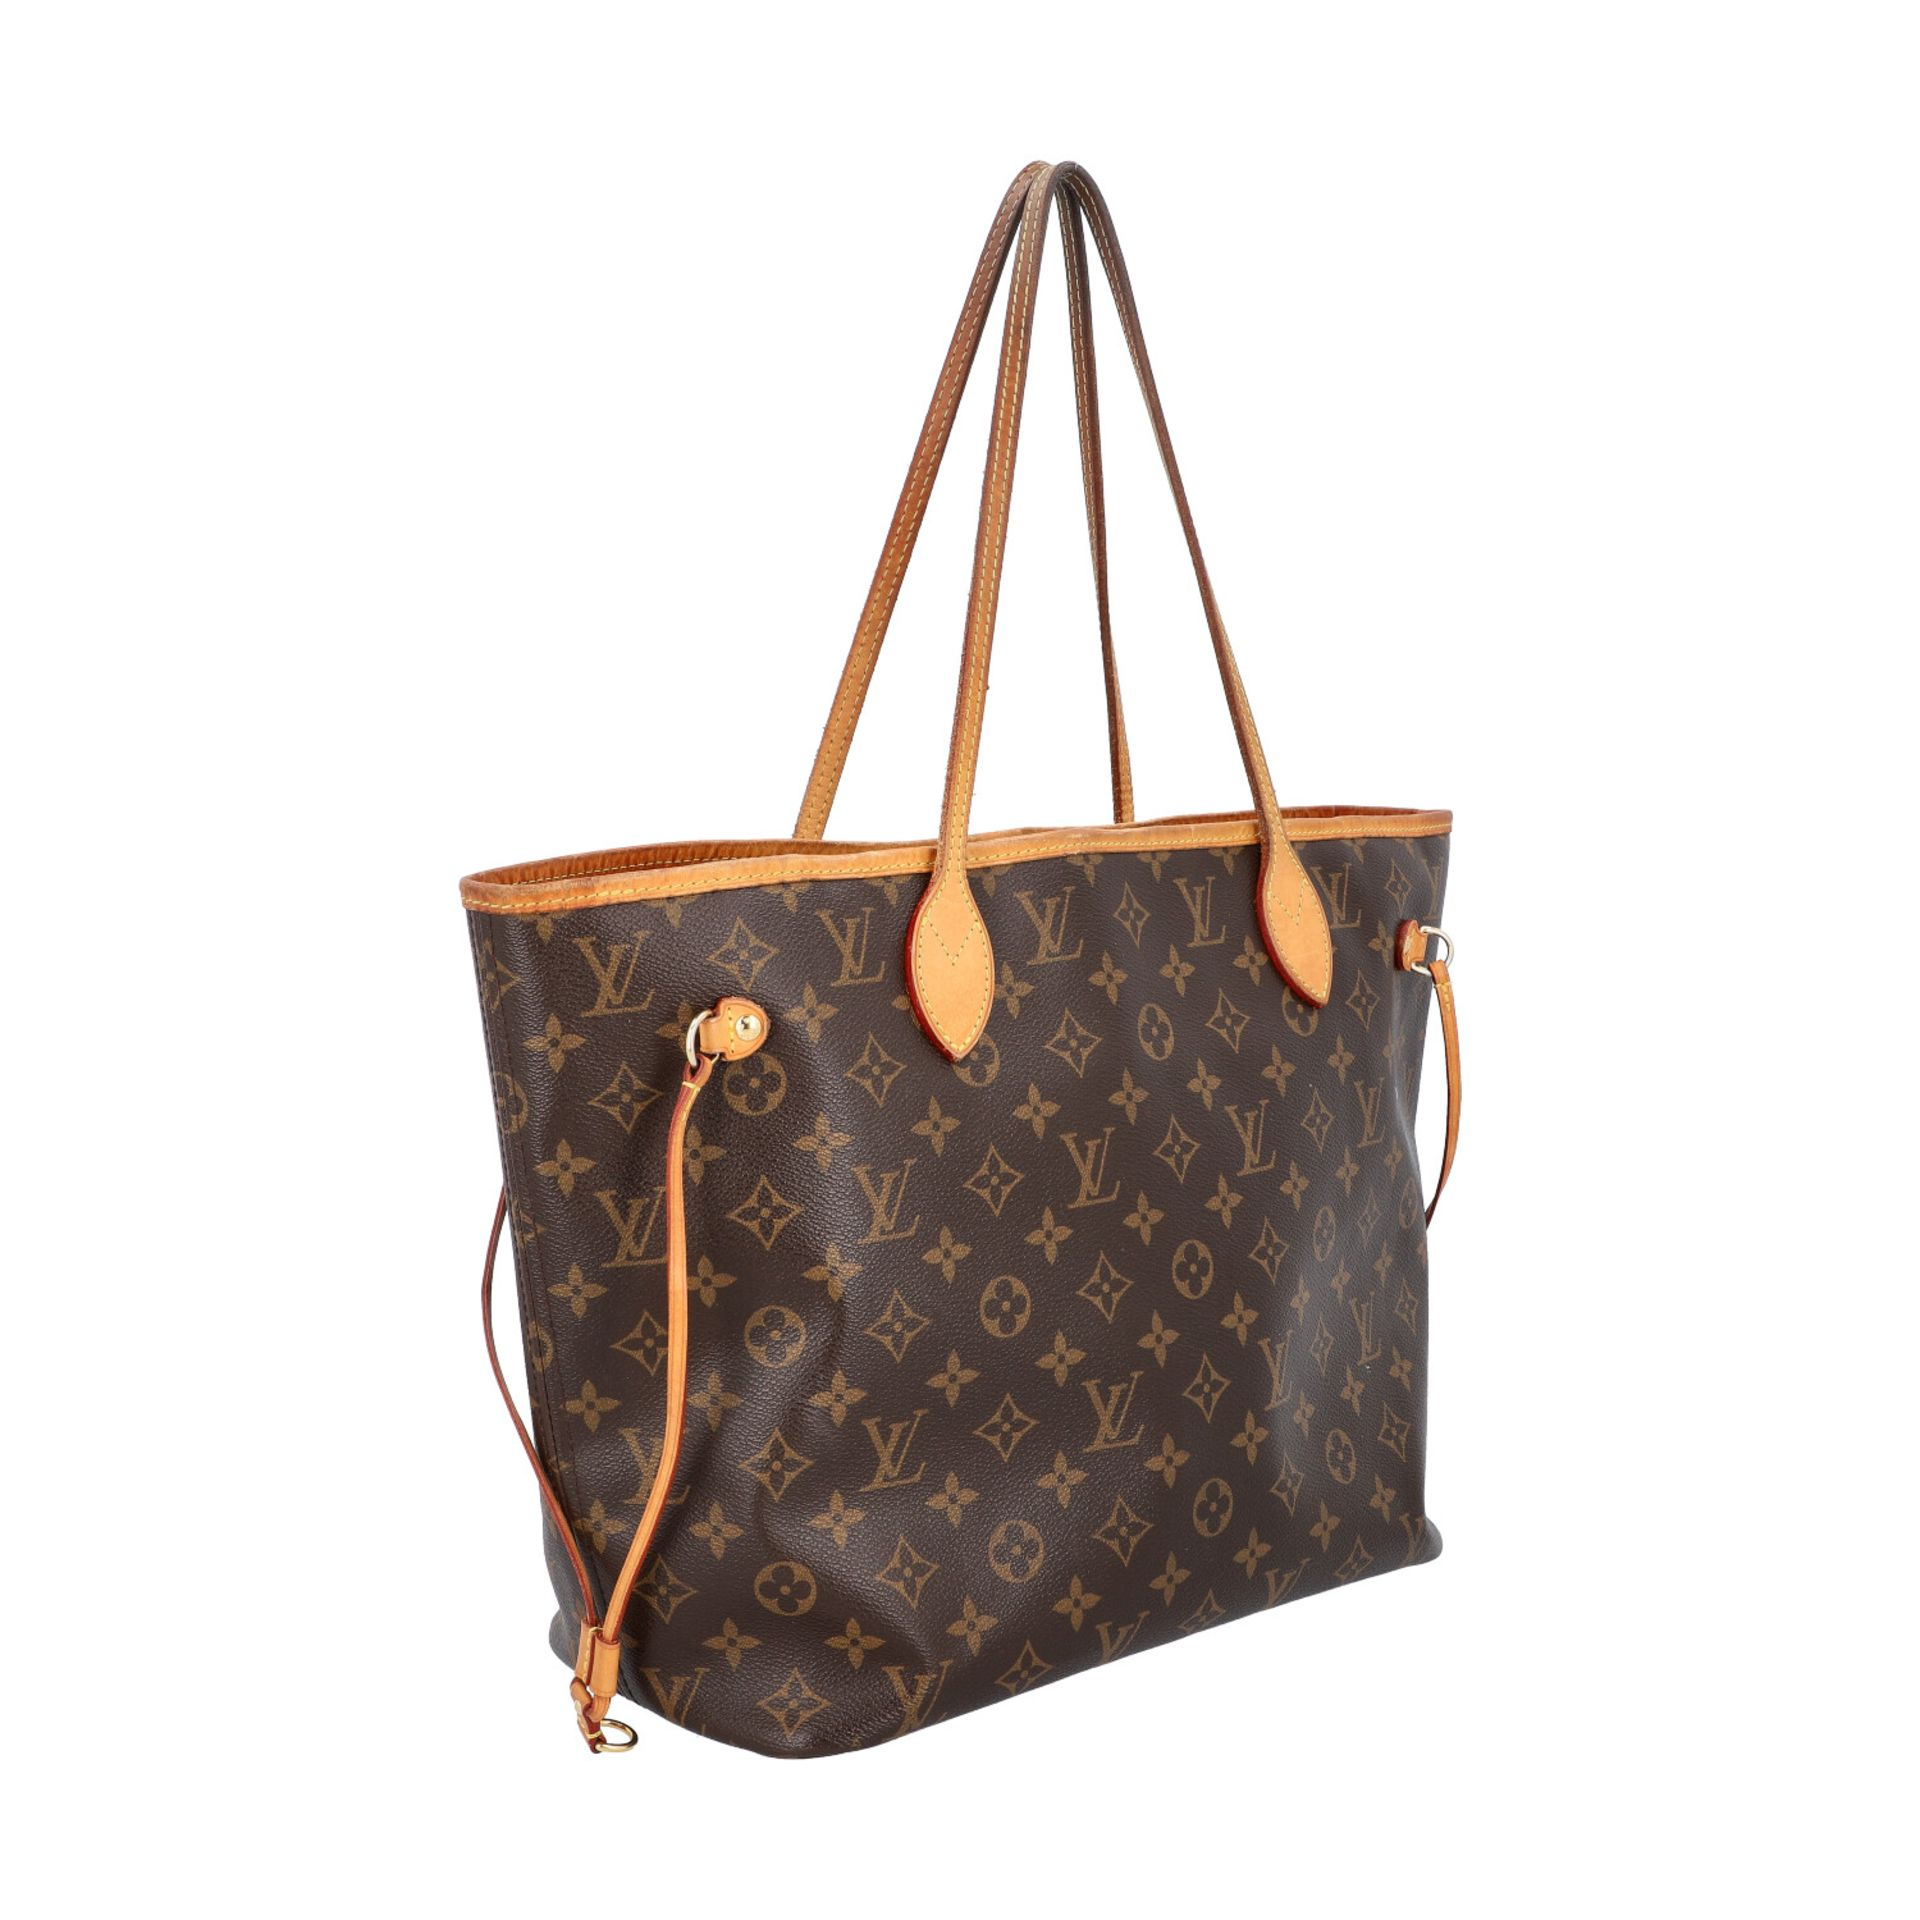 "LOUIS VUITTON Shoppertasche ""NEVERFULL MM"", Koll. 2014. Akt. NP.: 1150,-€. Monogram - Image 2 of 8"